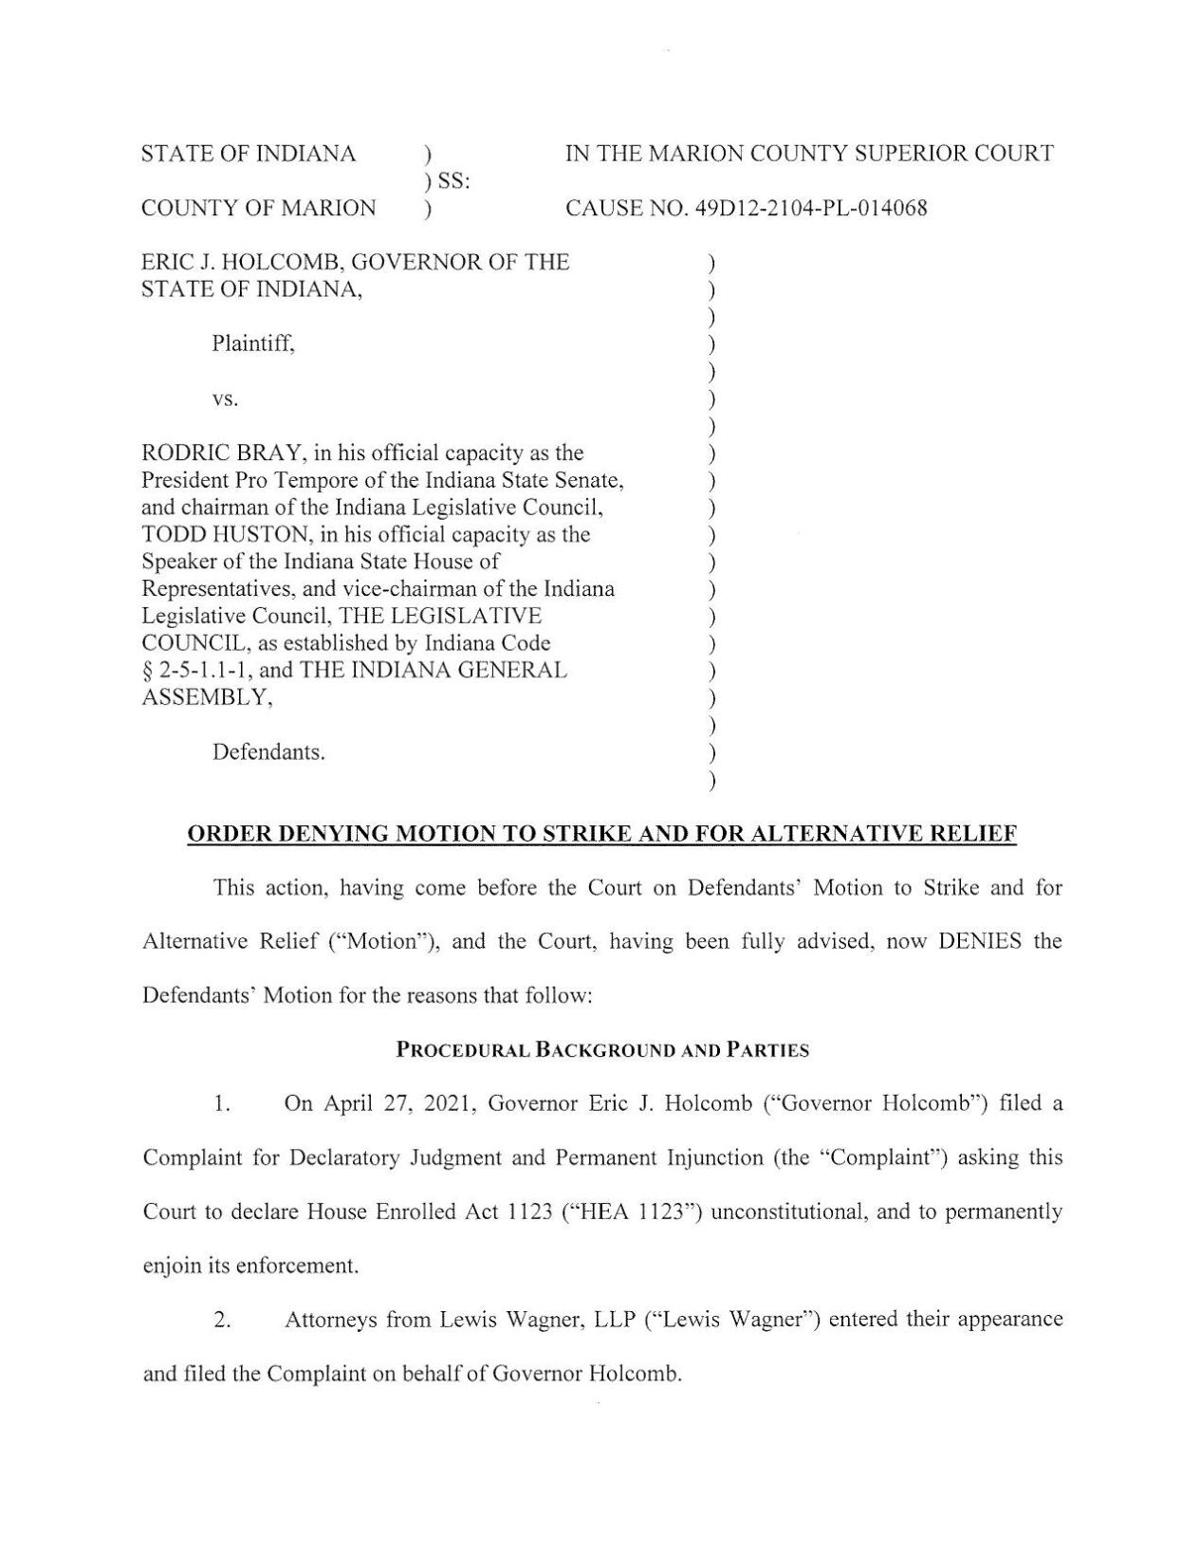 Holcomb v. Bray ruling of Marion Superior Court 12